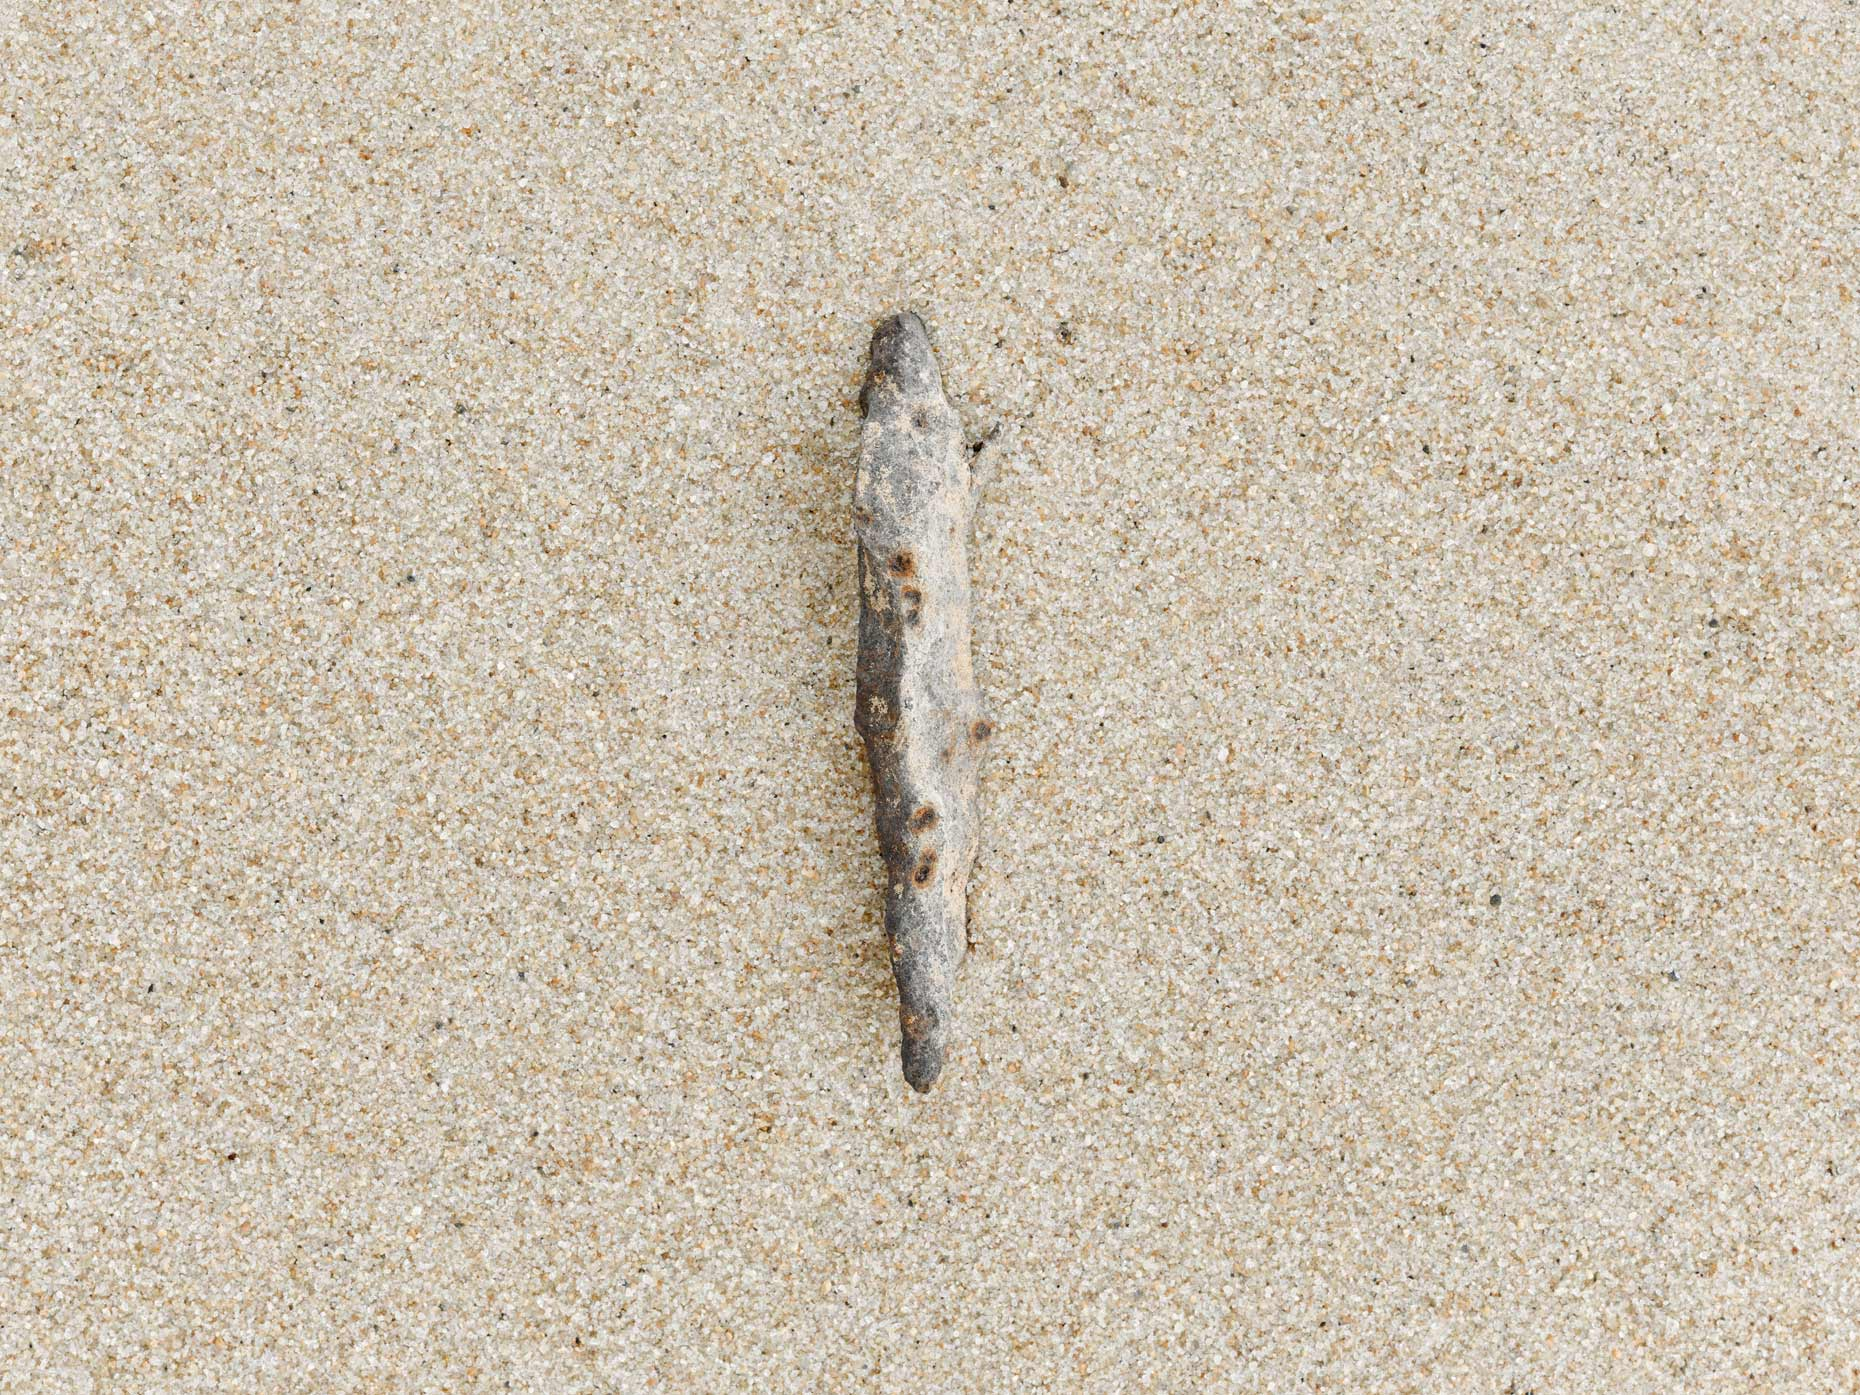 Shrapnel, No. 1, Libya, Traces of War Series